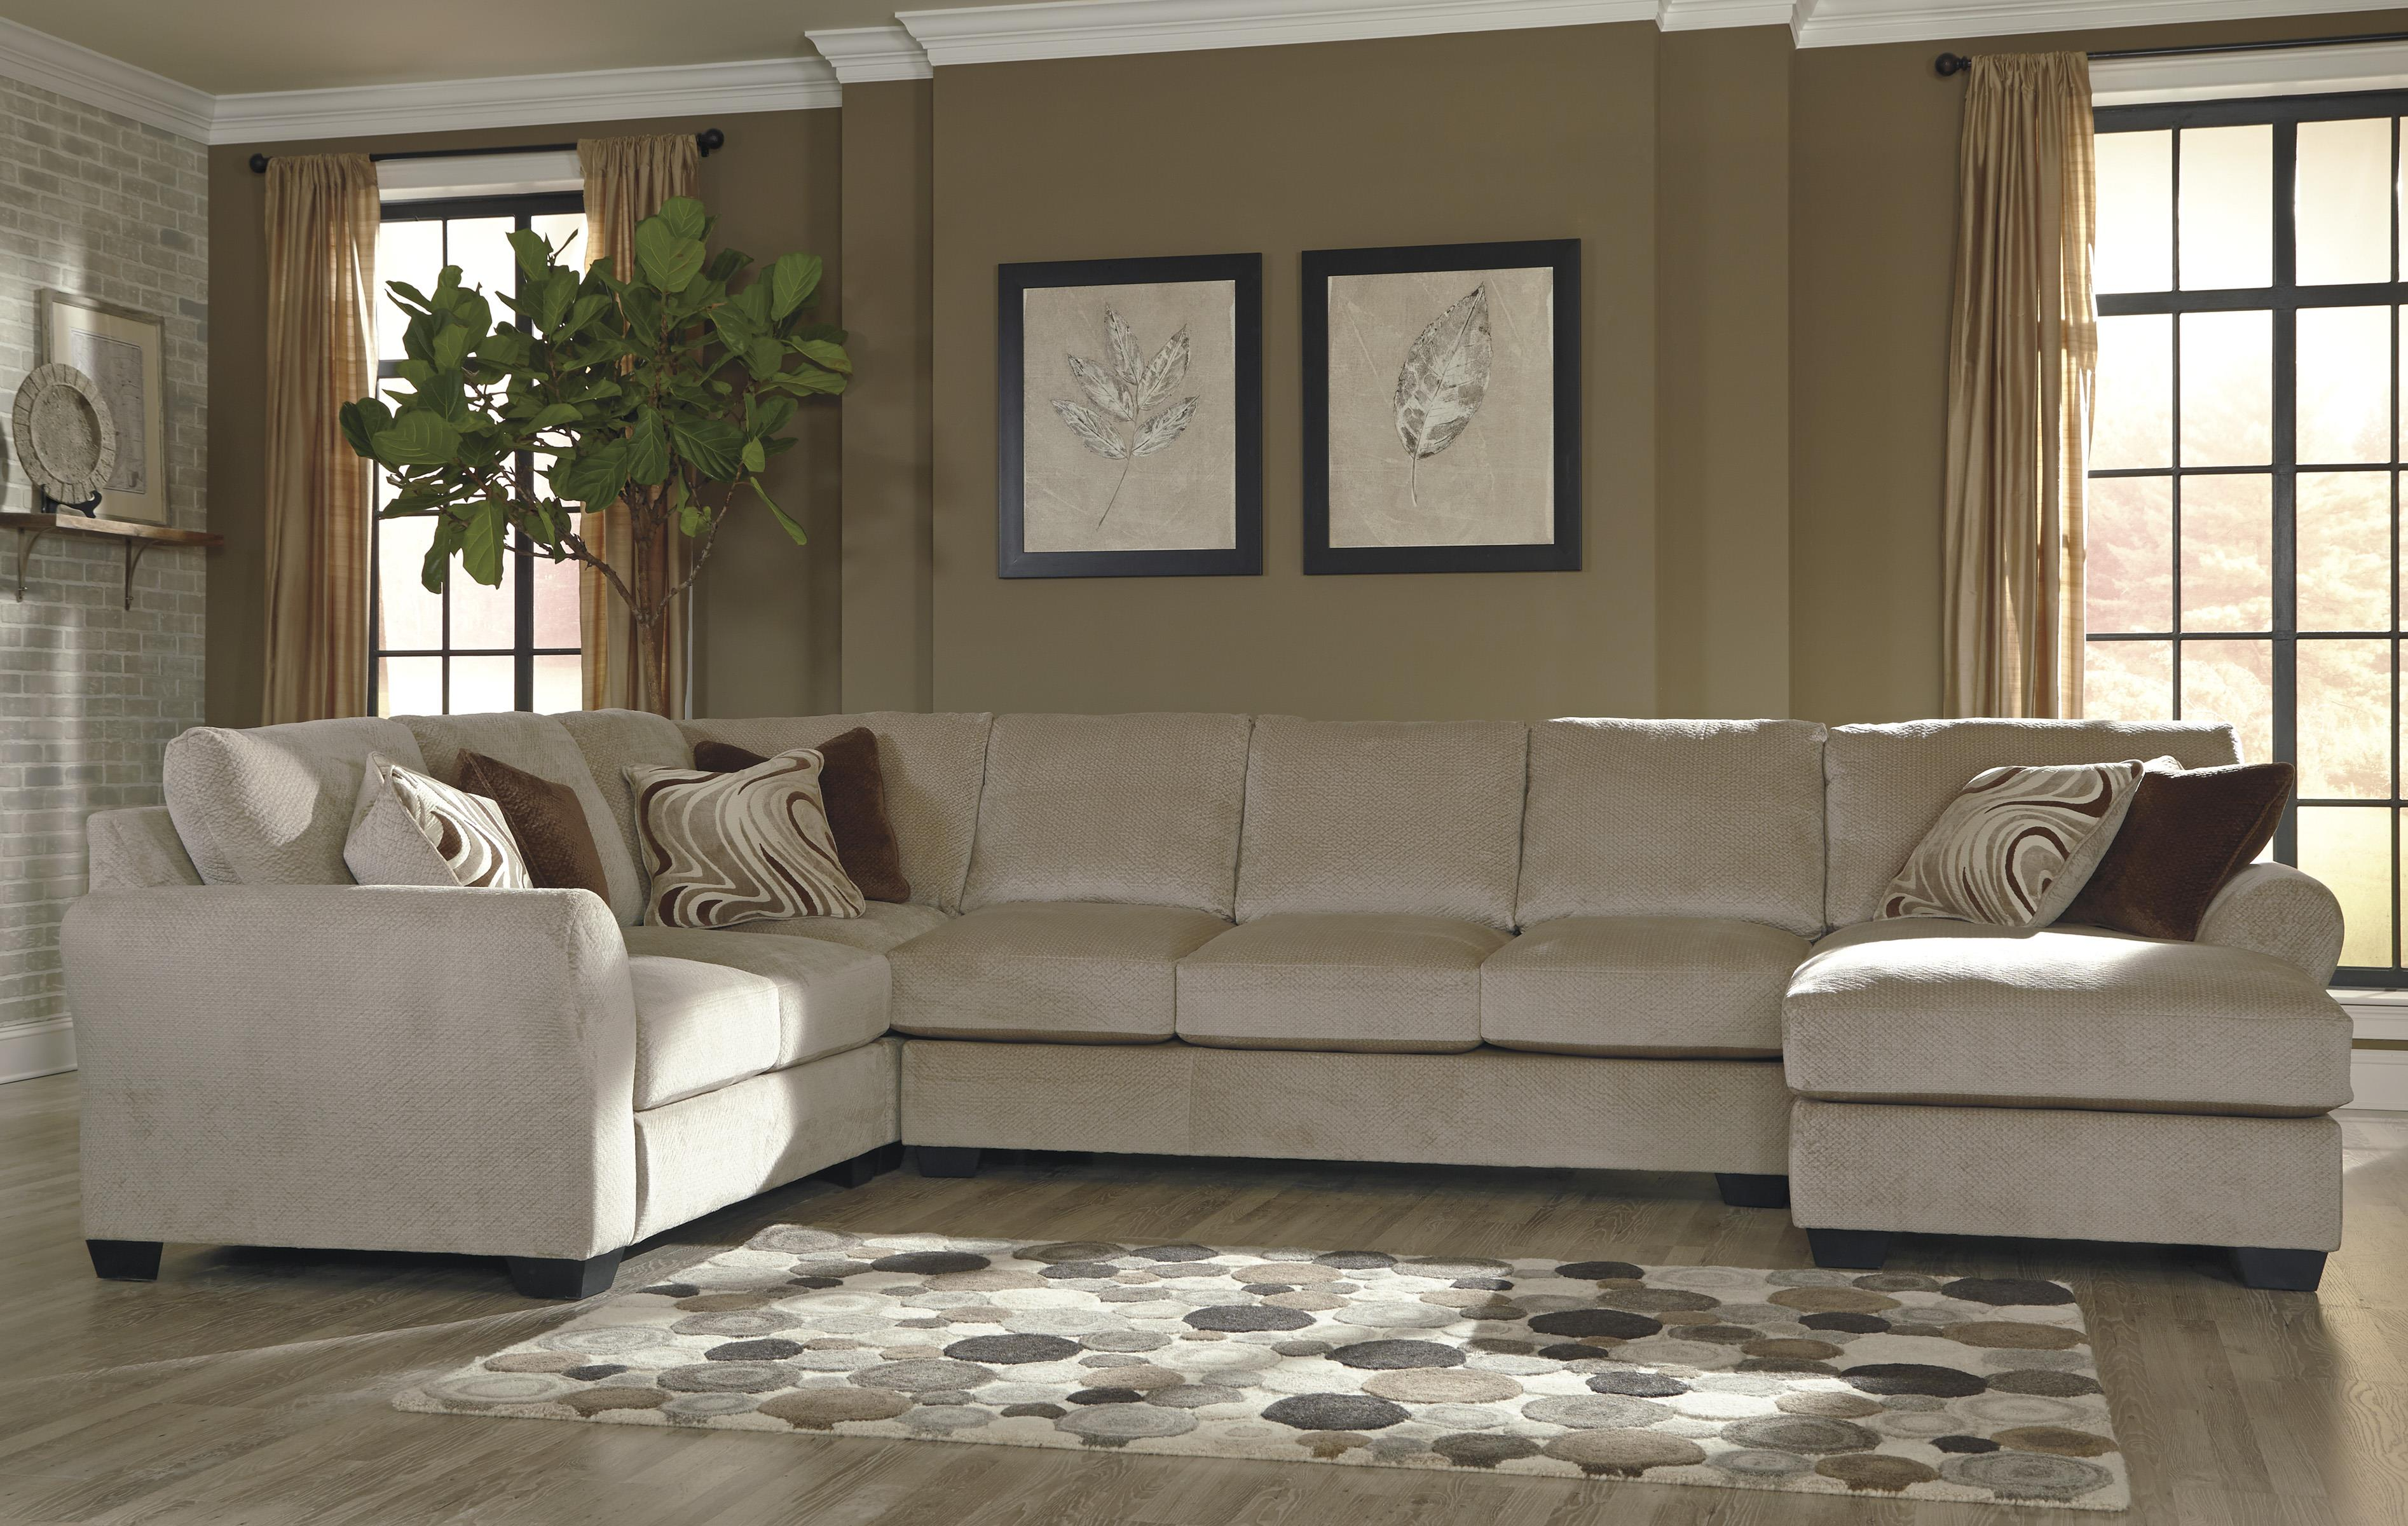 Benchcraft Hazes 4 Piece Sectional w Armless Sofa & Right Chaise